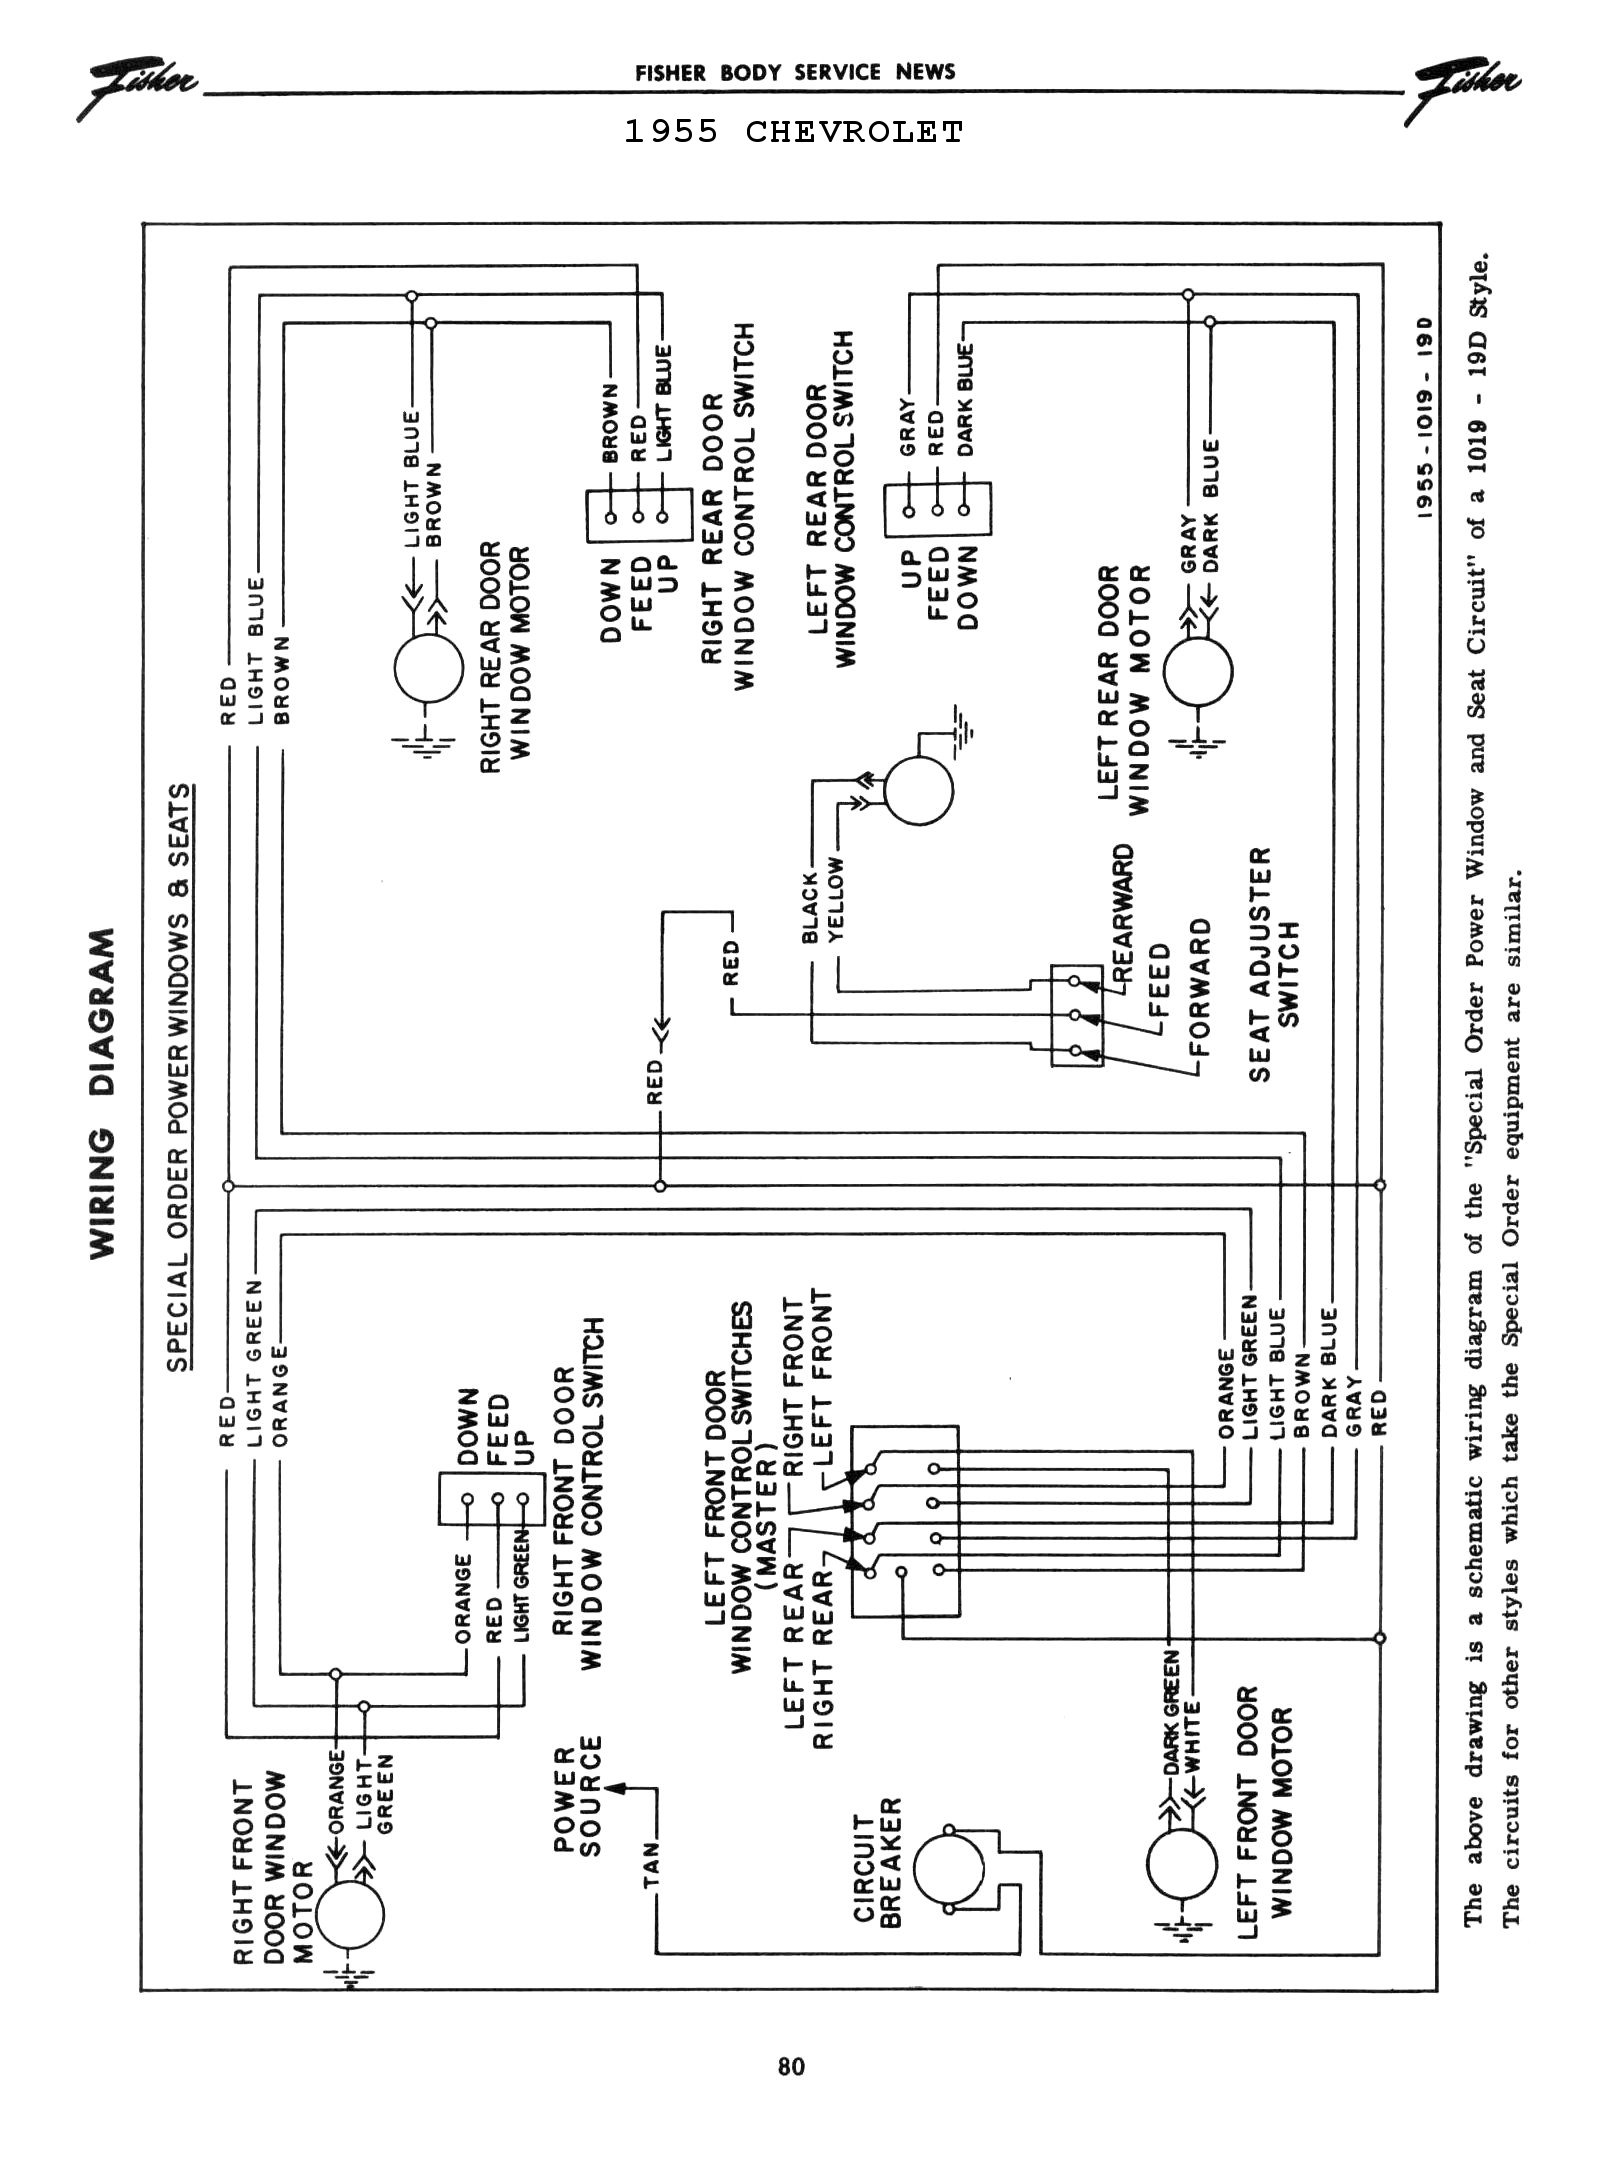 wiring diagram for 1954 chevy bel air wiring diagram for 1955 chevy bel air ignition switch wiring question ndash trifive 1955 #2